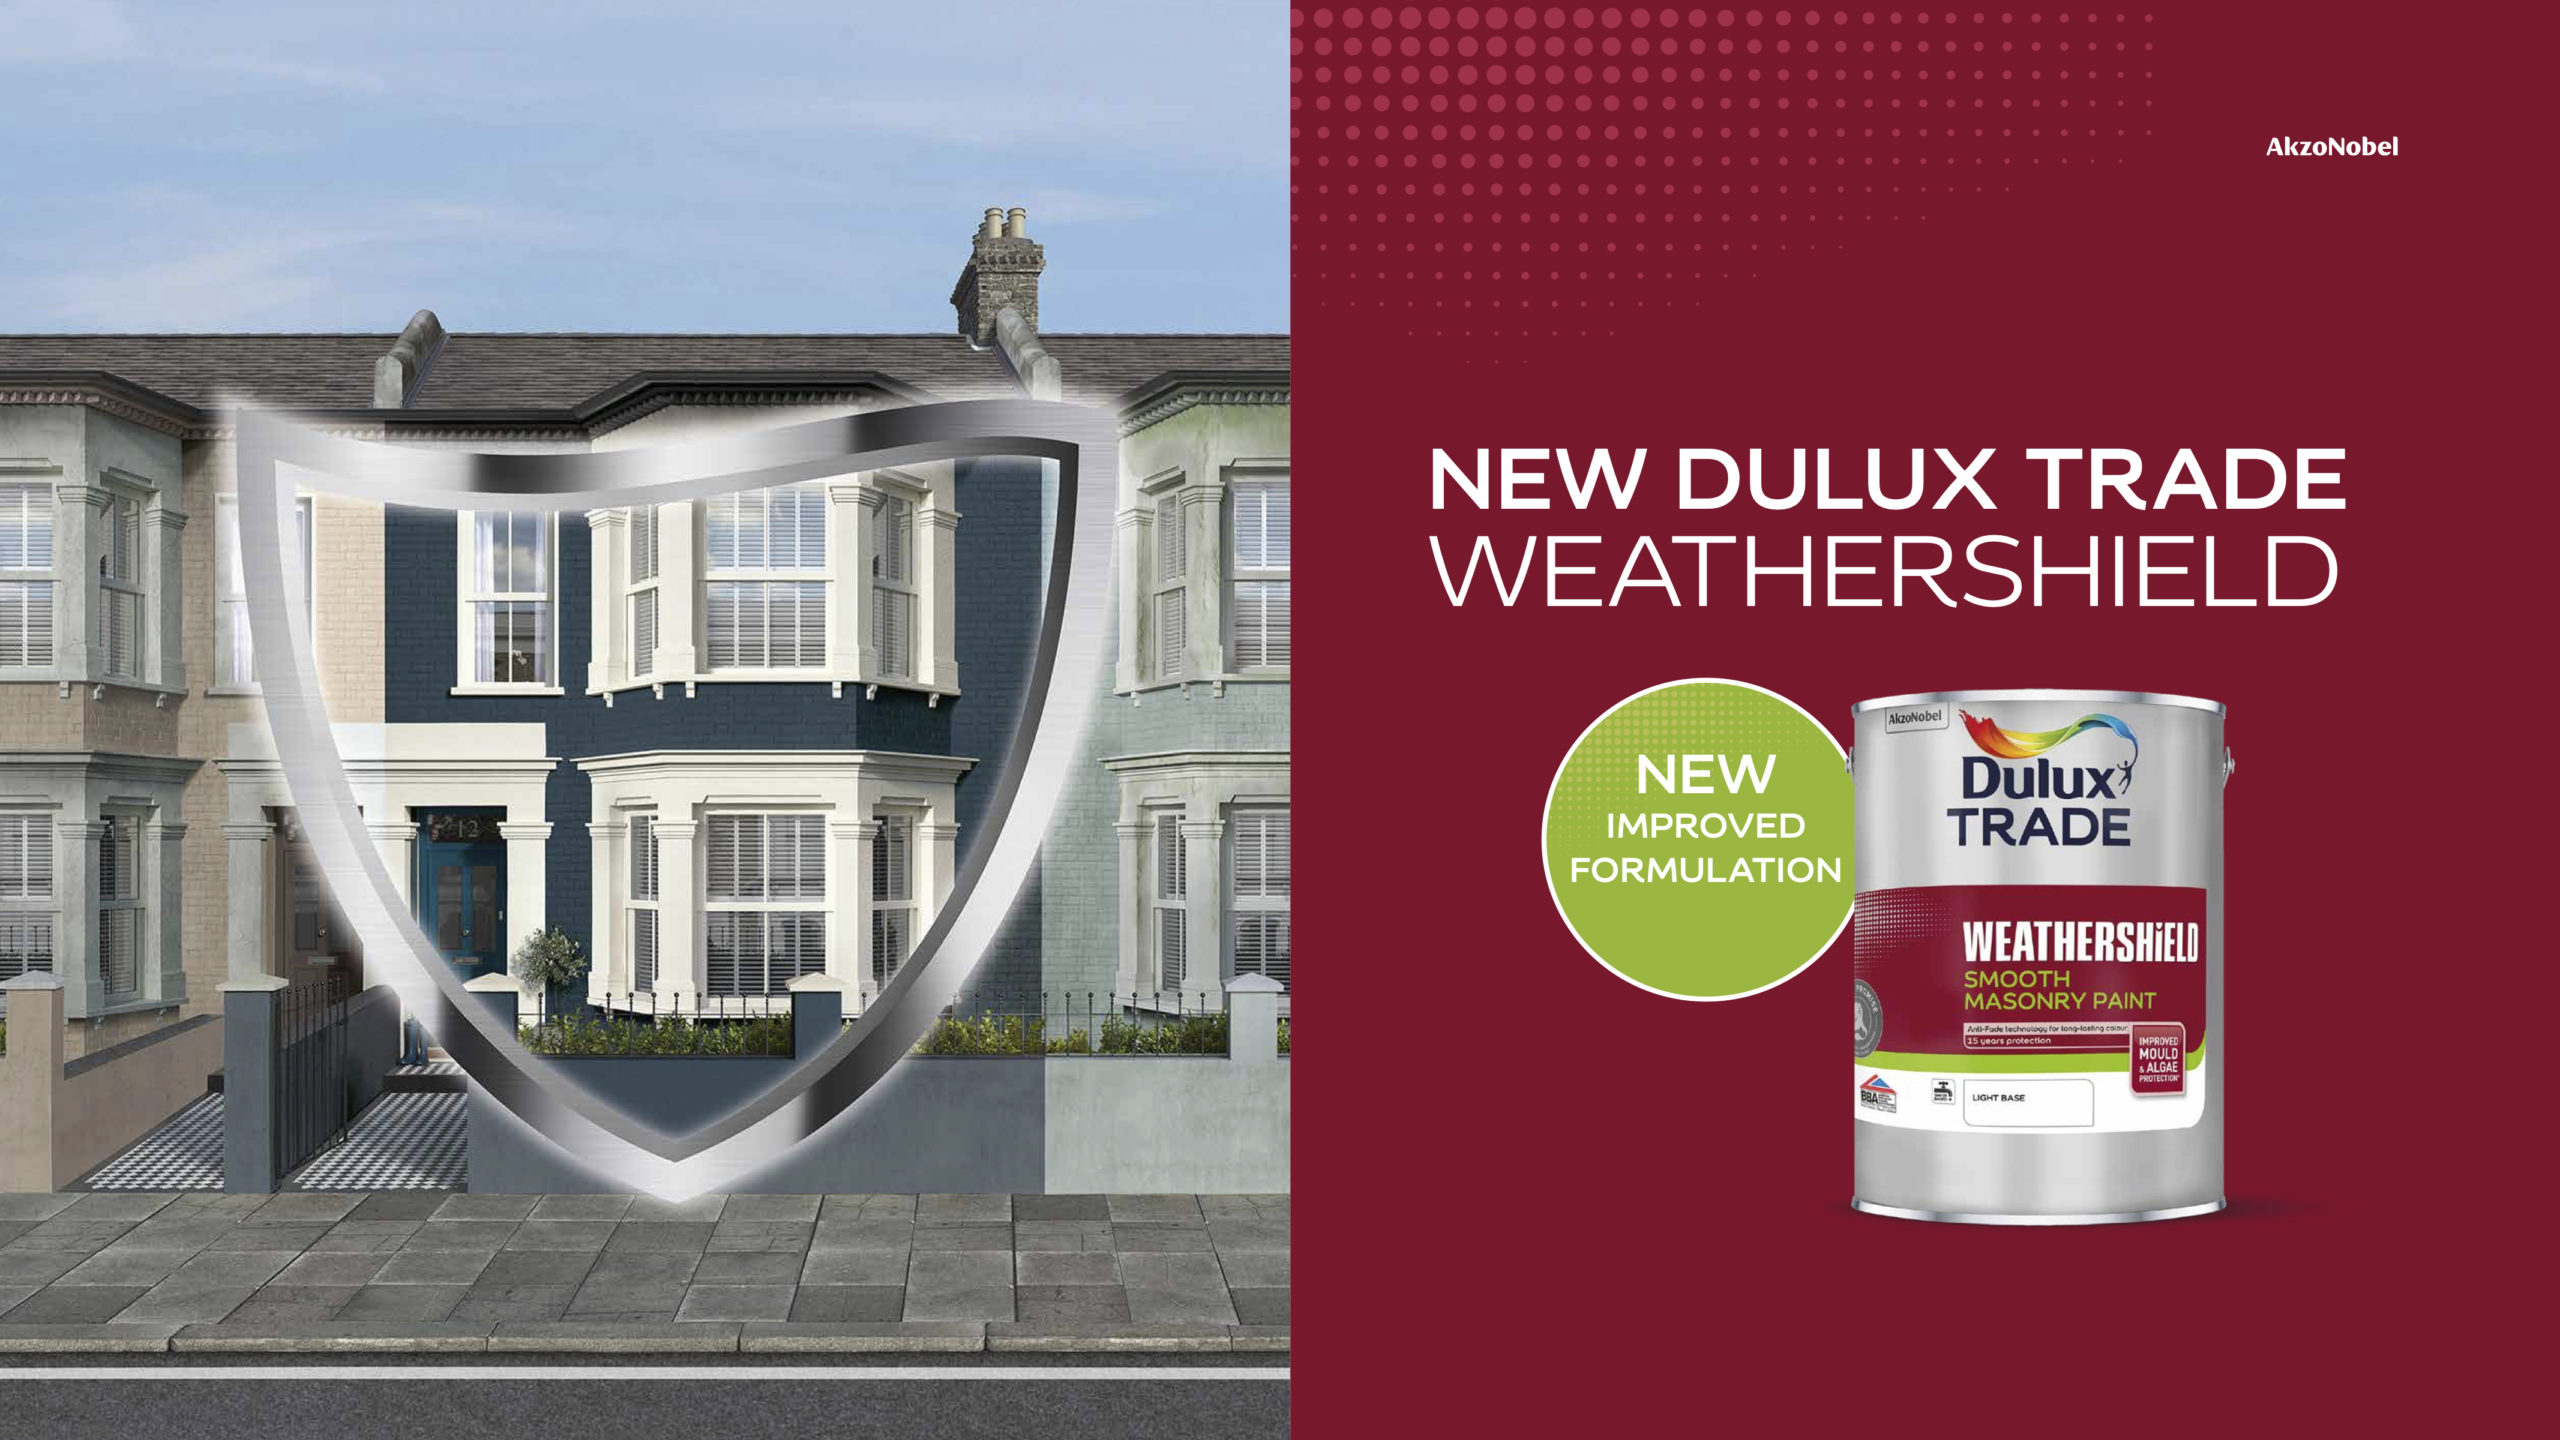 New Dulux Trade Weathershield formulations offer the ultimate in performance